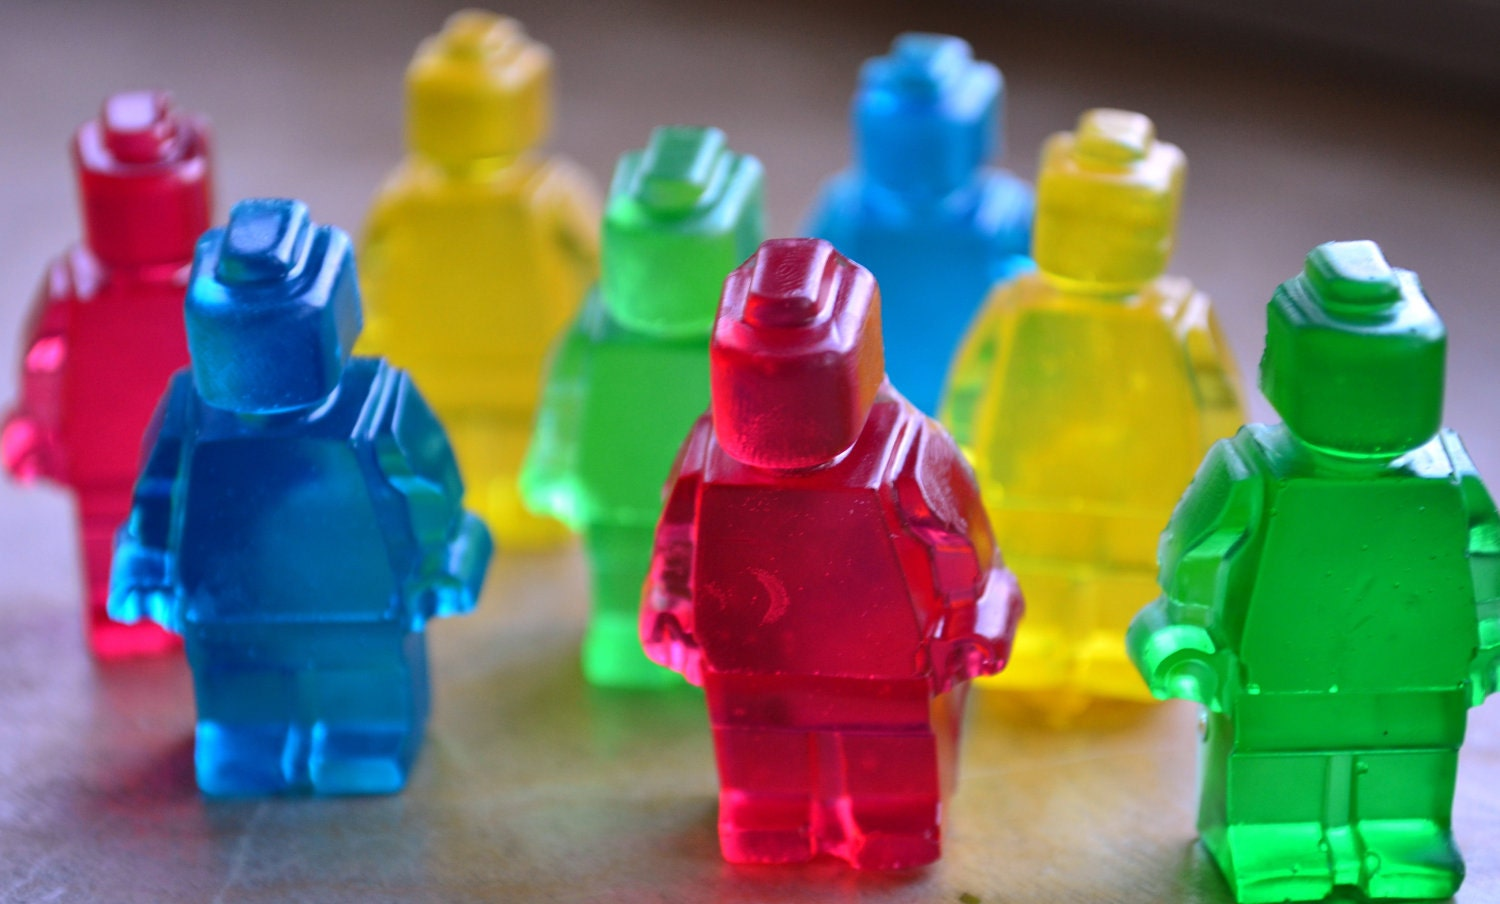 Kids Toys Action Figure: Toy Action Figure Kids Soap Perfect Party Favor By Ajsweetsoap